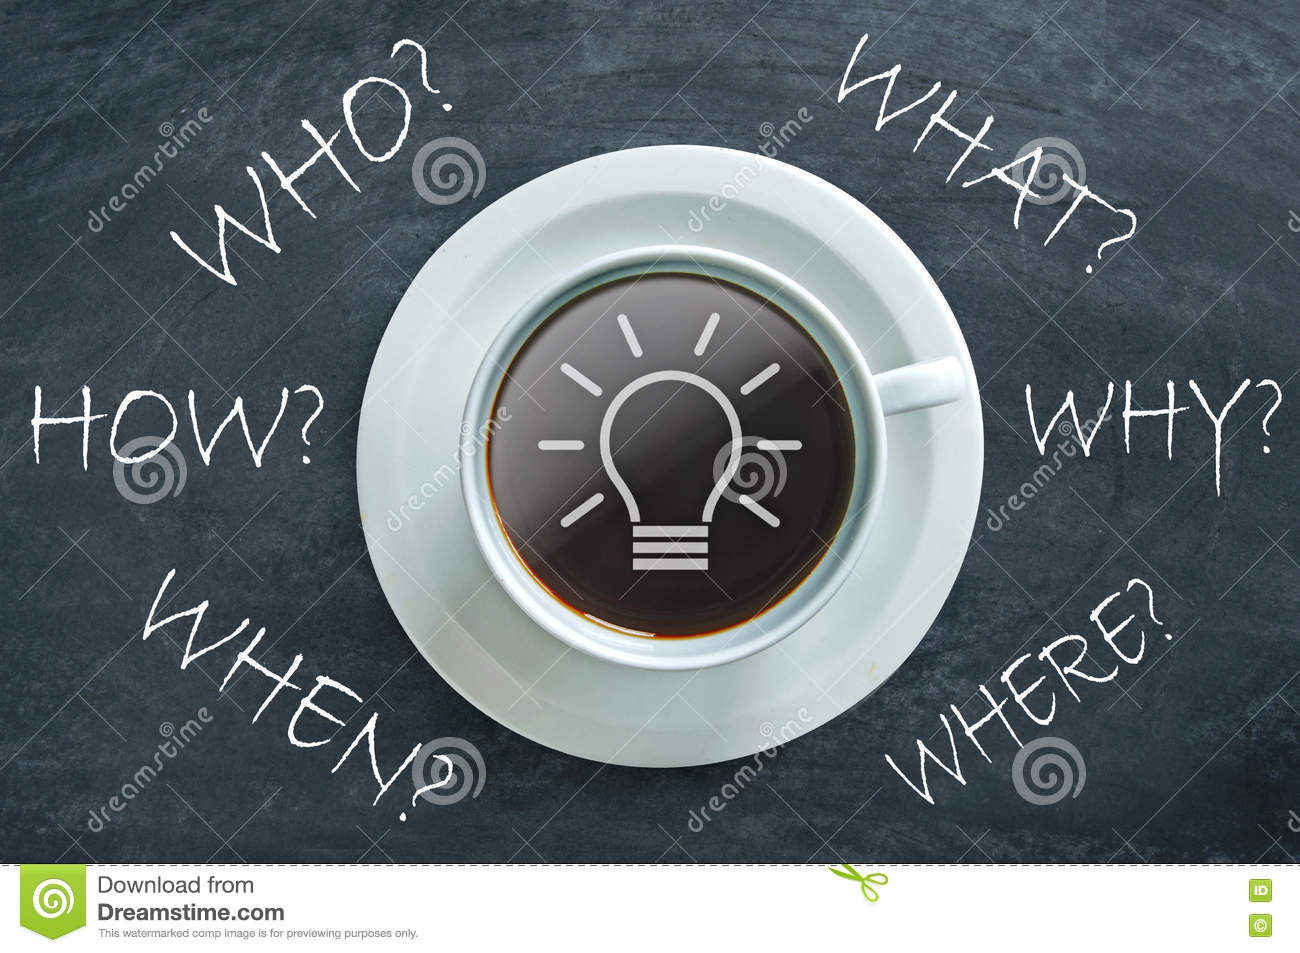 Who, what, when, where, when, how, questions